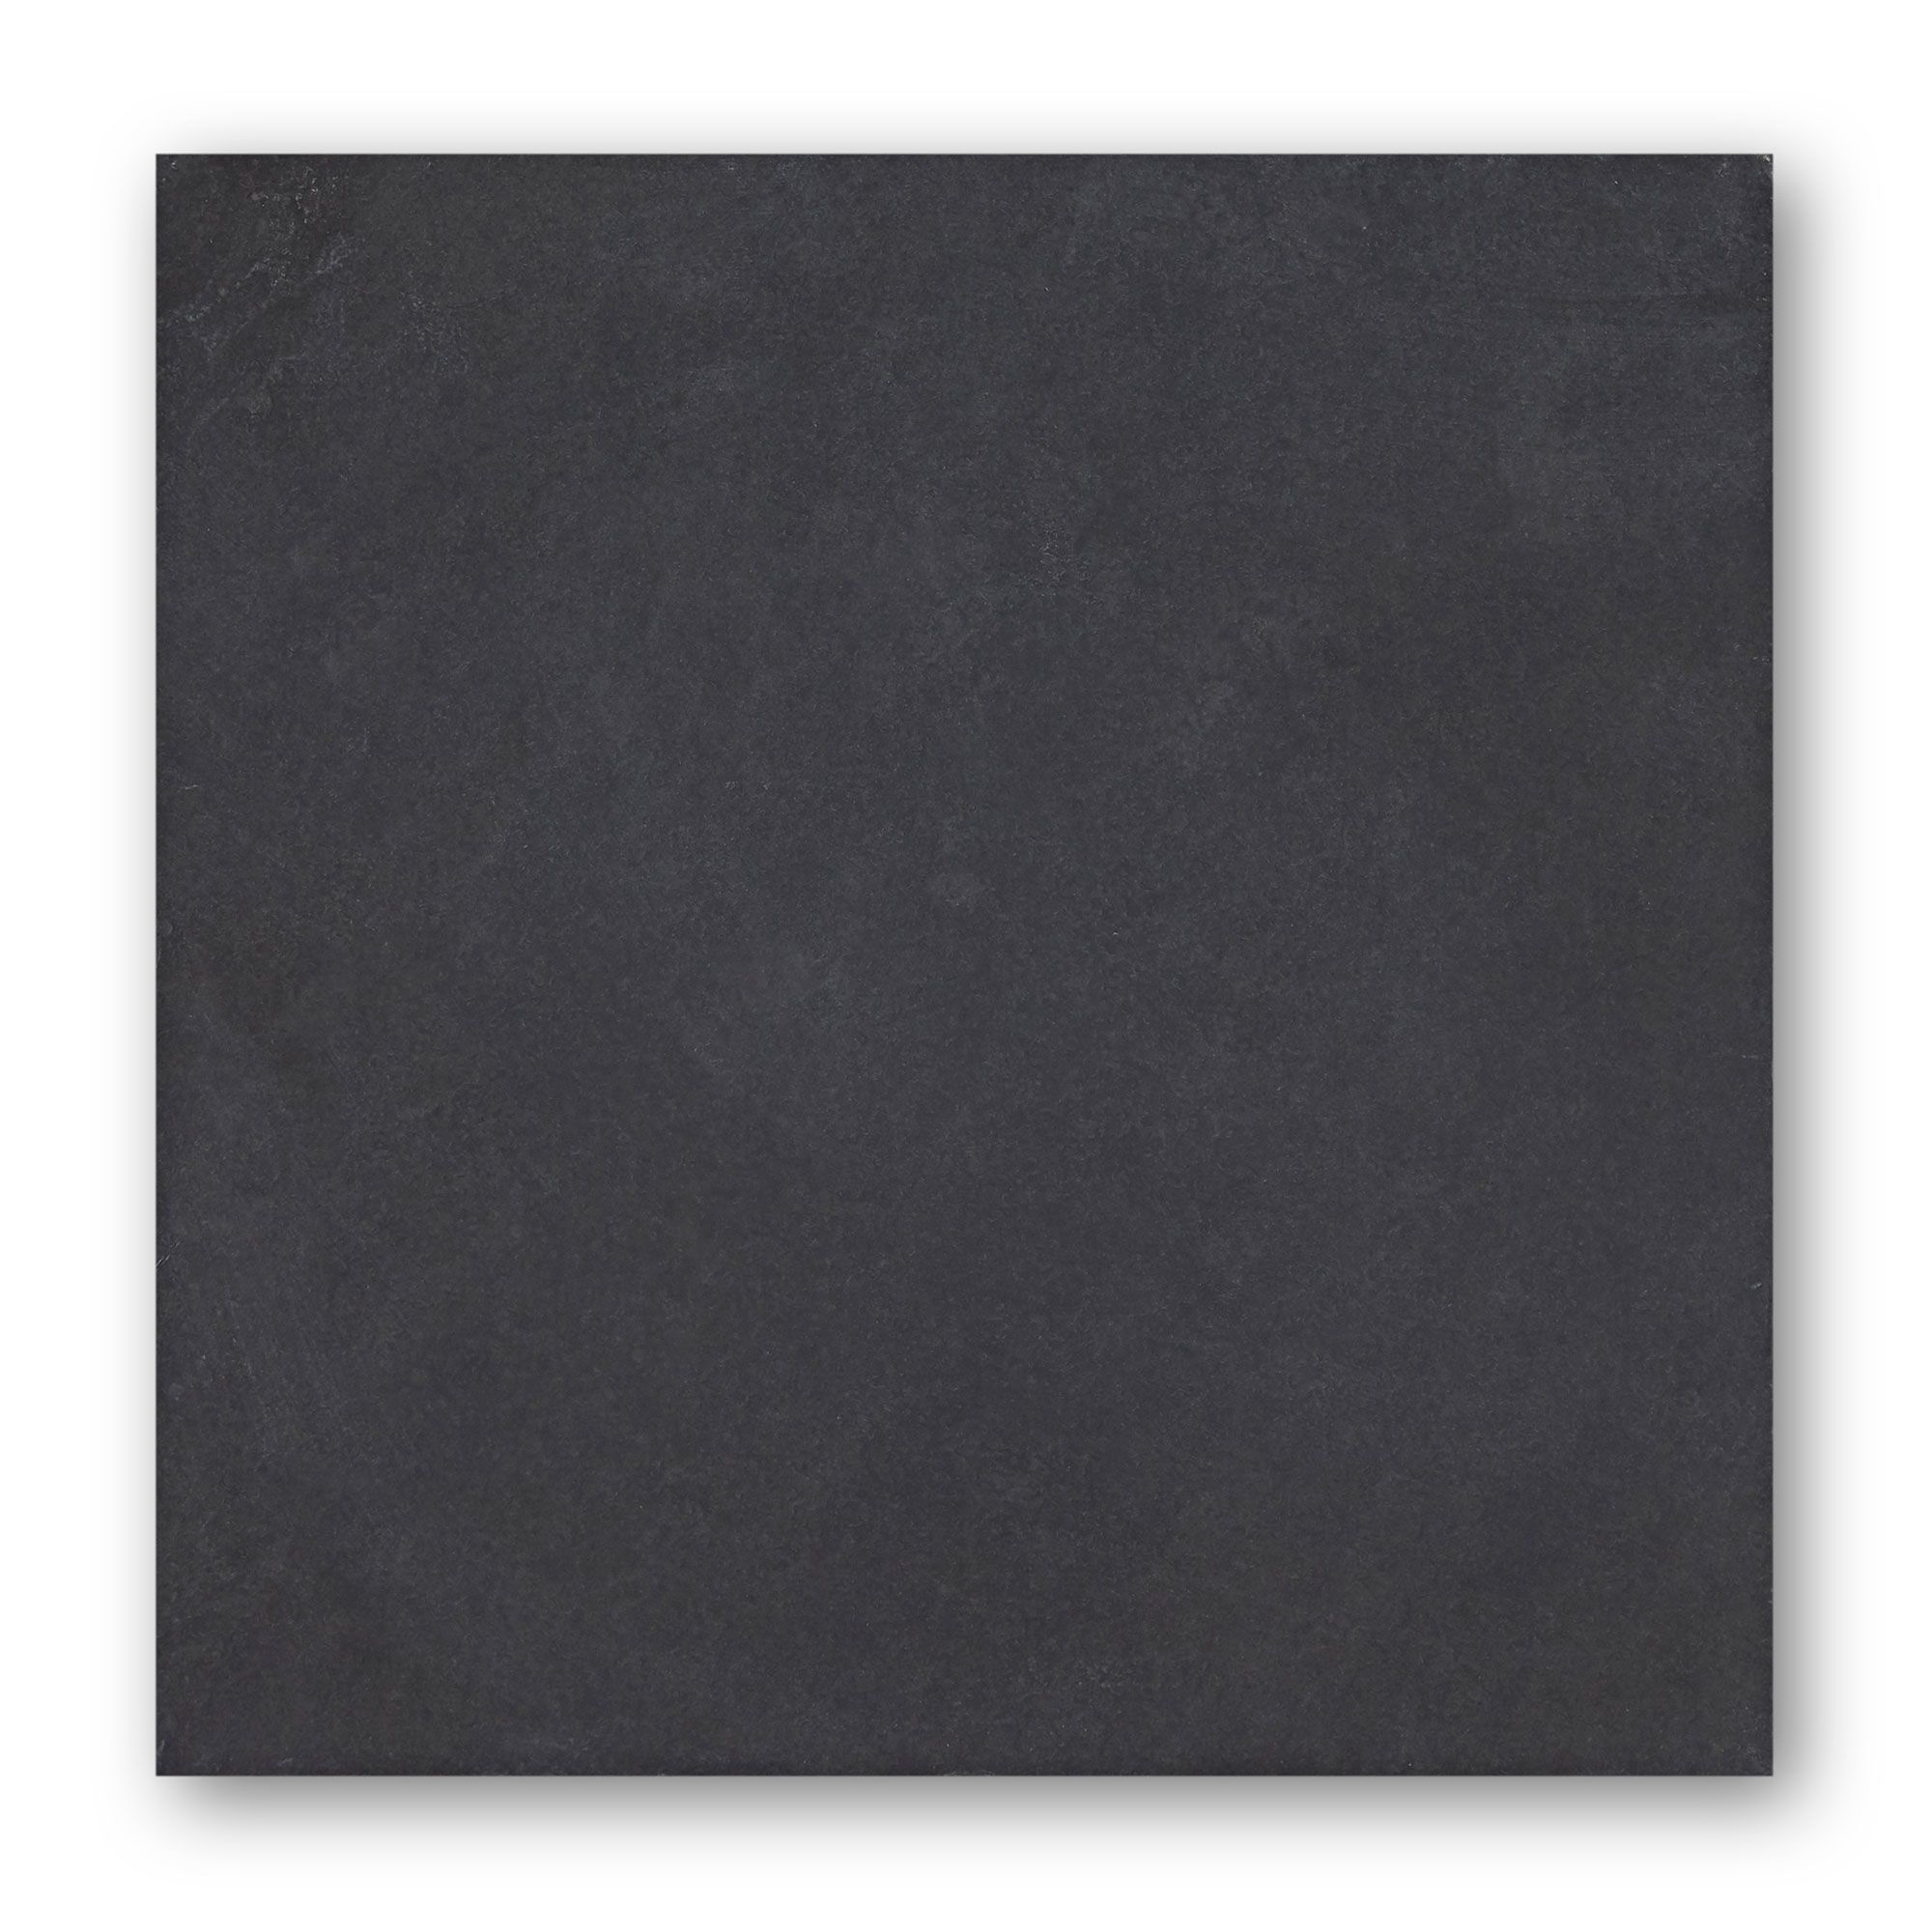 Urban Slate 30x30 Black/Grey